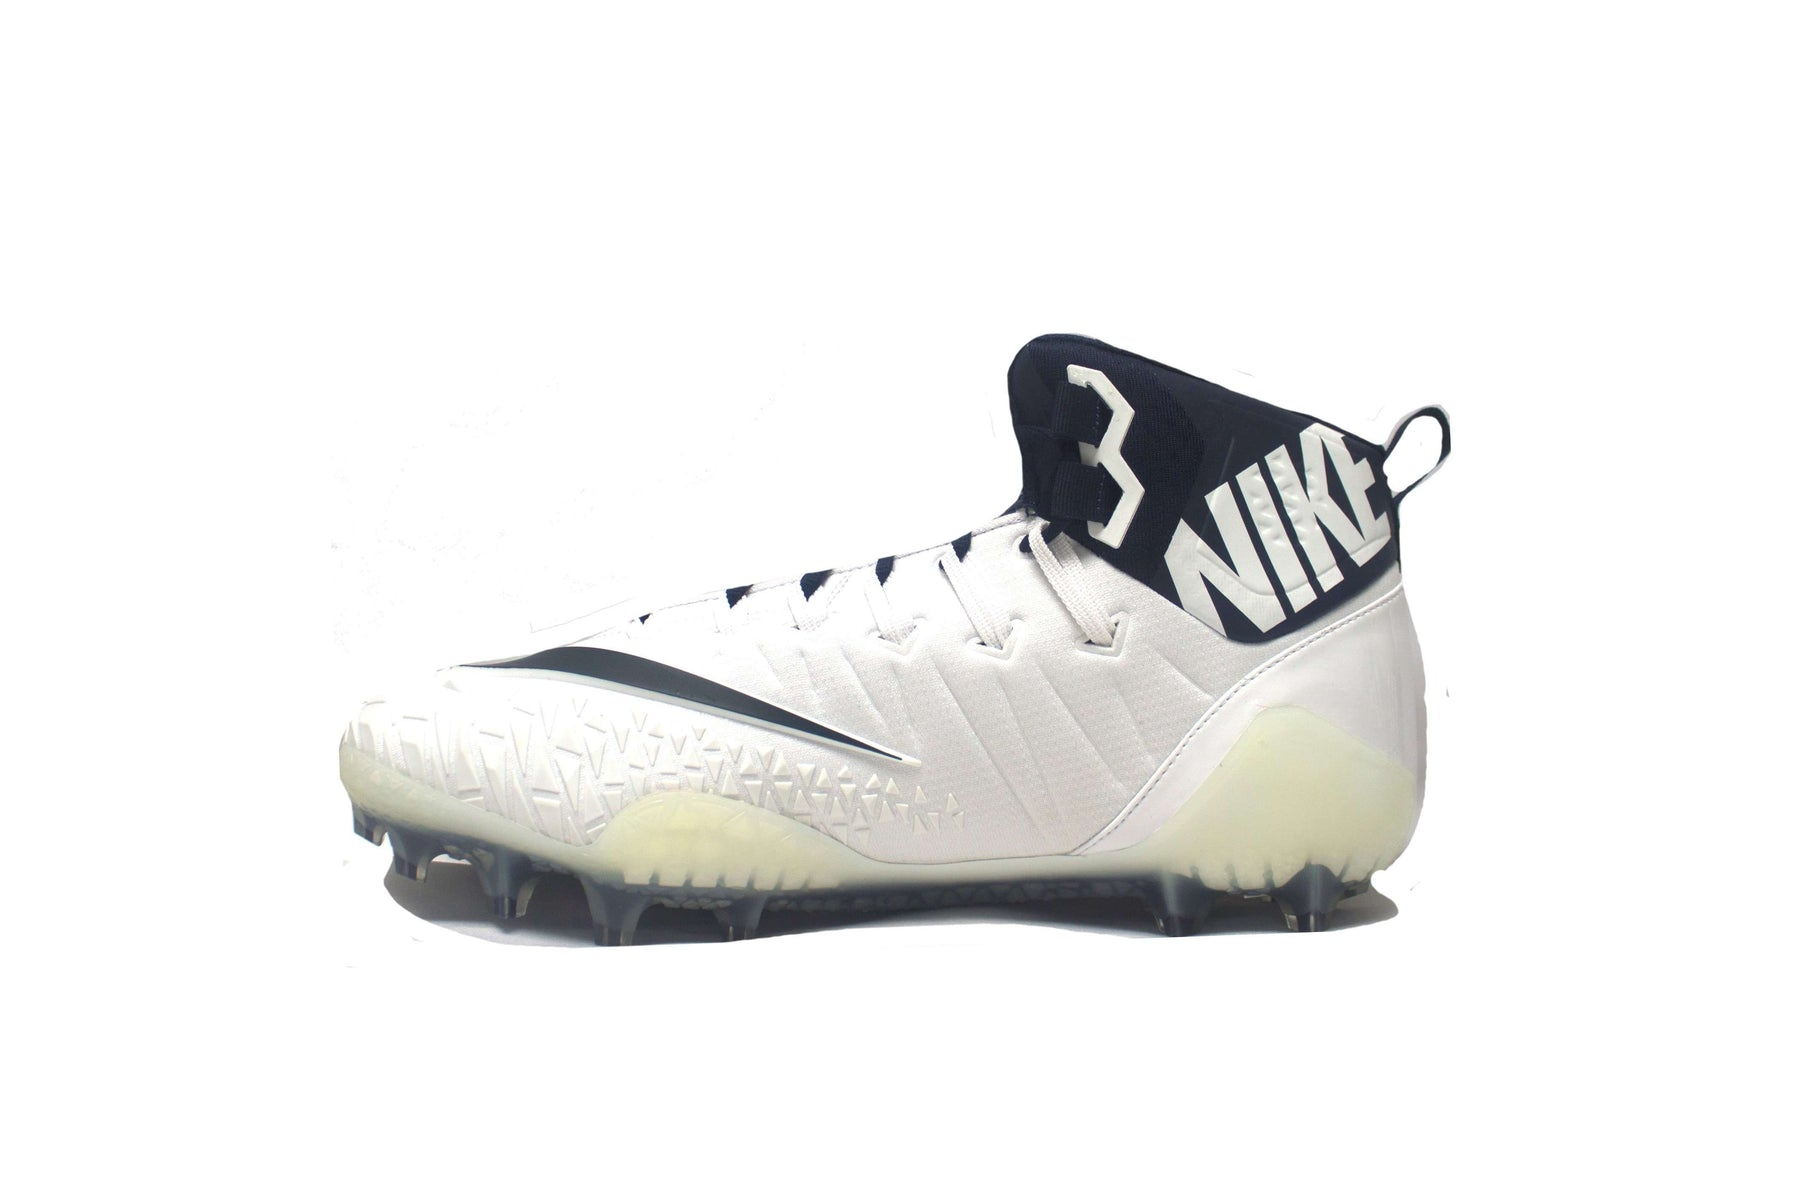 size 40 5b0af 18b41 ... Nike Force Savage Pro TD Promo Football Cleats - League Outfitters ...